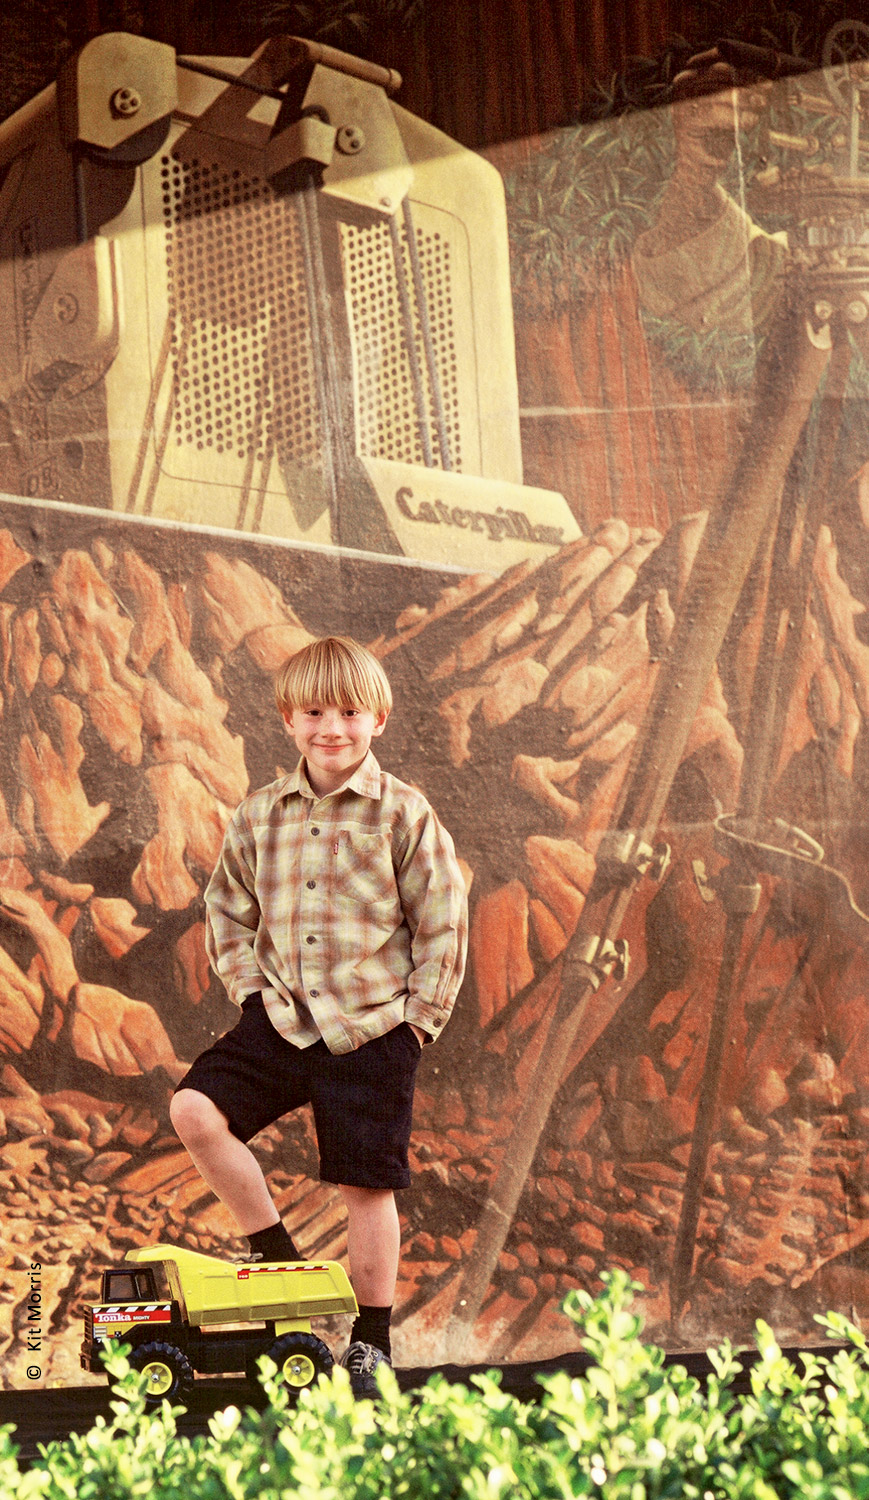 photo of young boy wearing a plaid Levi's shirt standing on a toy Tonka dump truck in front of a painted mural of a construction site